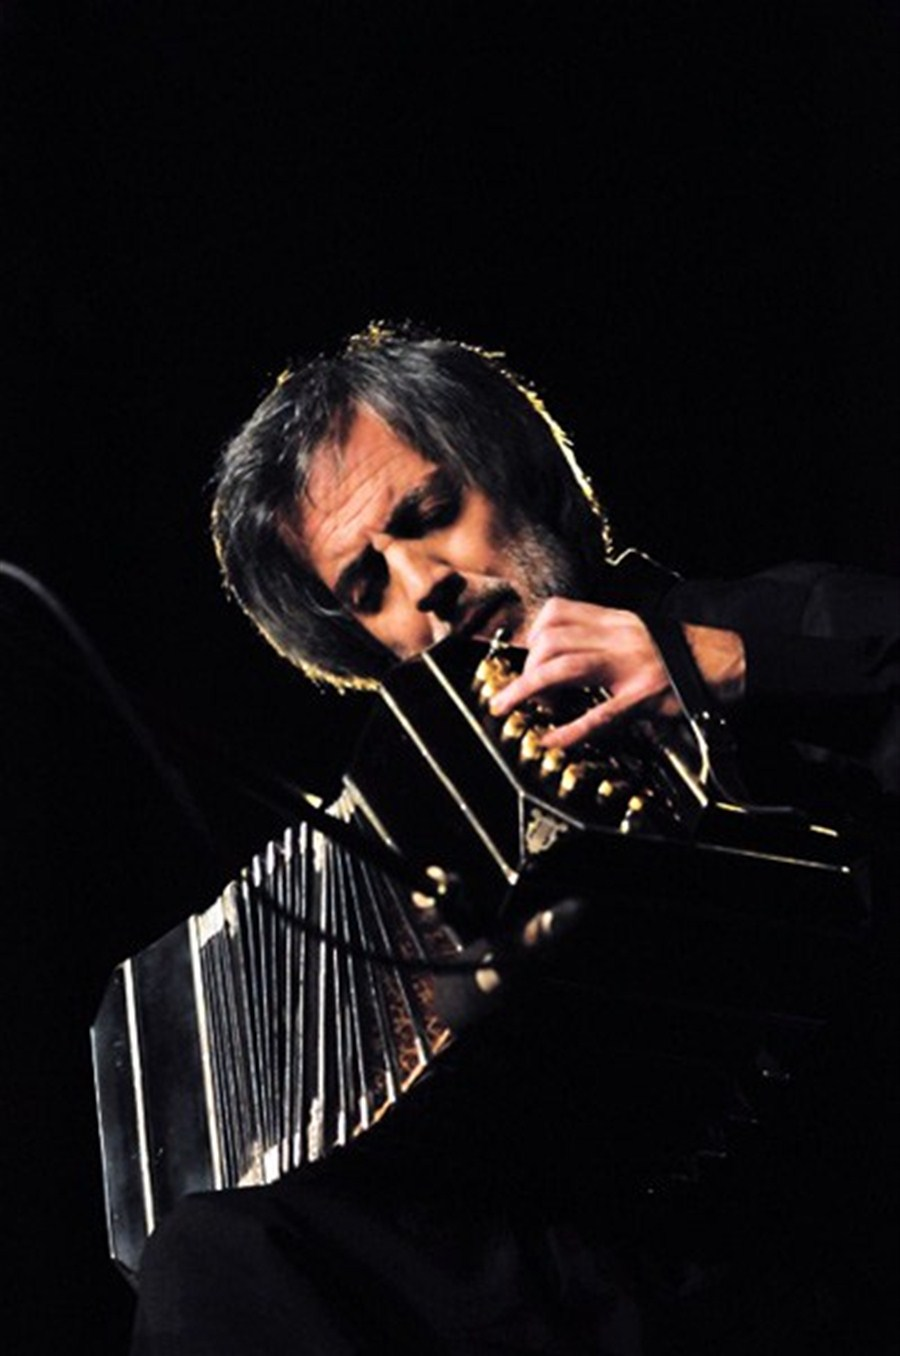 Tango Music Played With Bandoneon Is His Life Passion